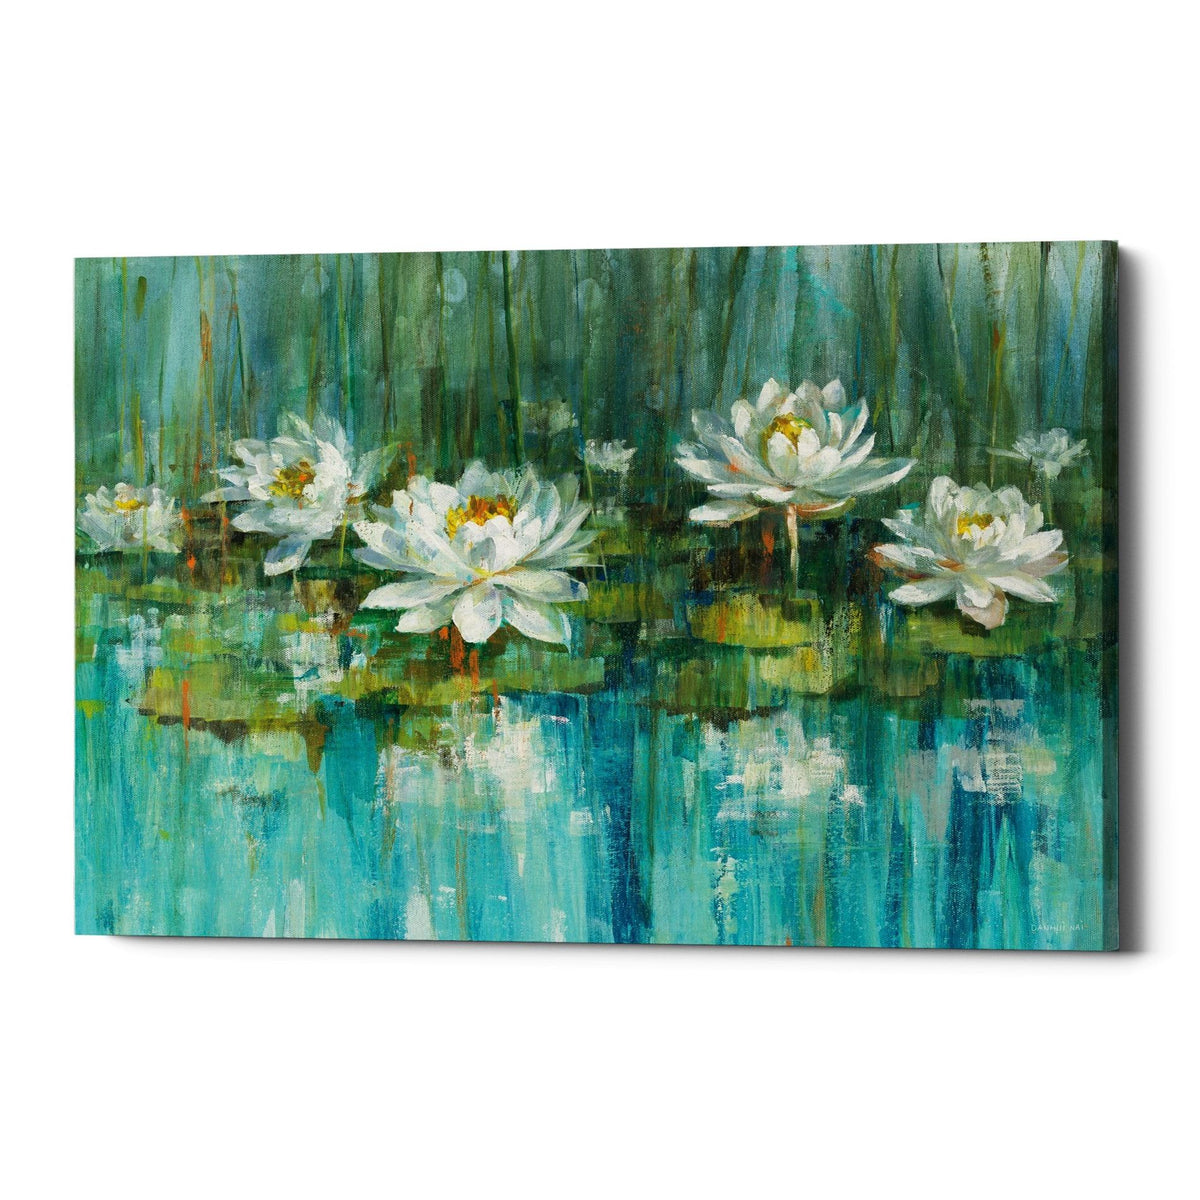 "Epic Graffiti ""Water Lily Pond"" by Danhui Nai, Giclee Canvas Wall Art"